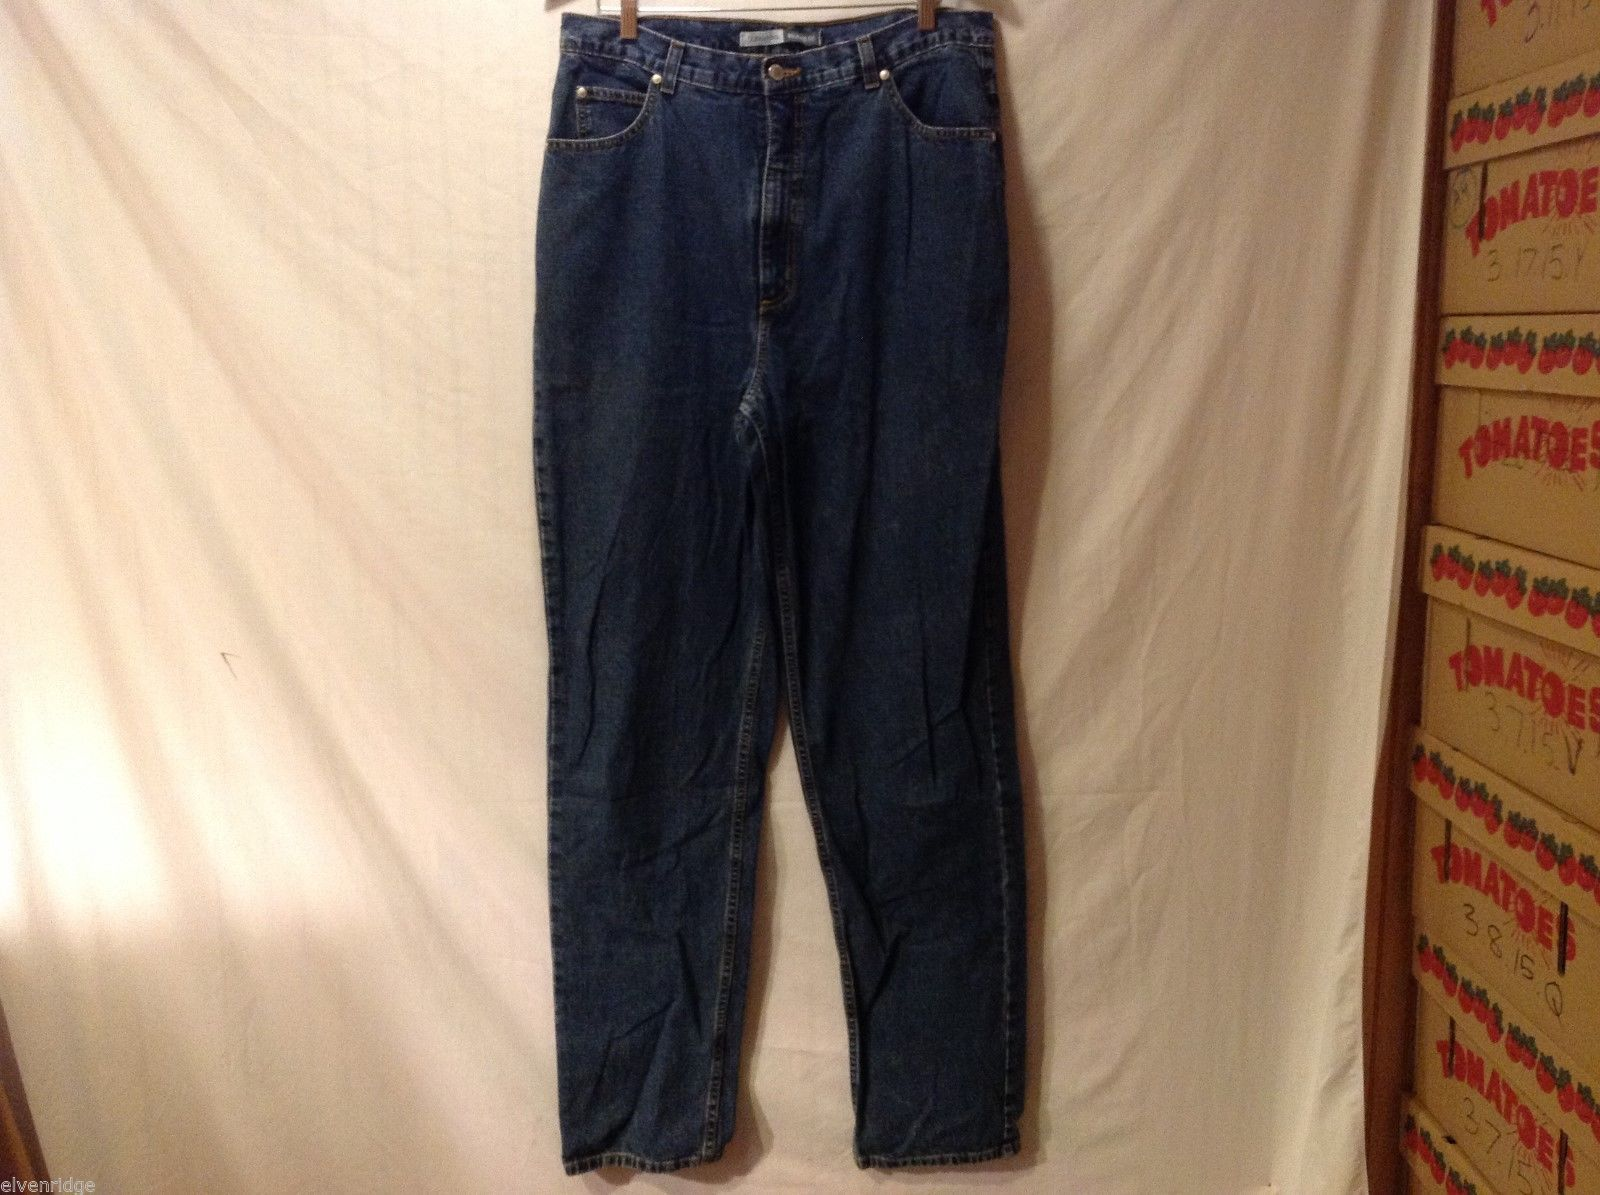 St. John's Bay Women Denim Jeans, Size 16 Ultra Tall Length